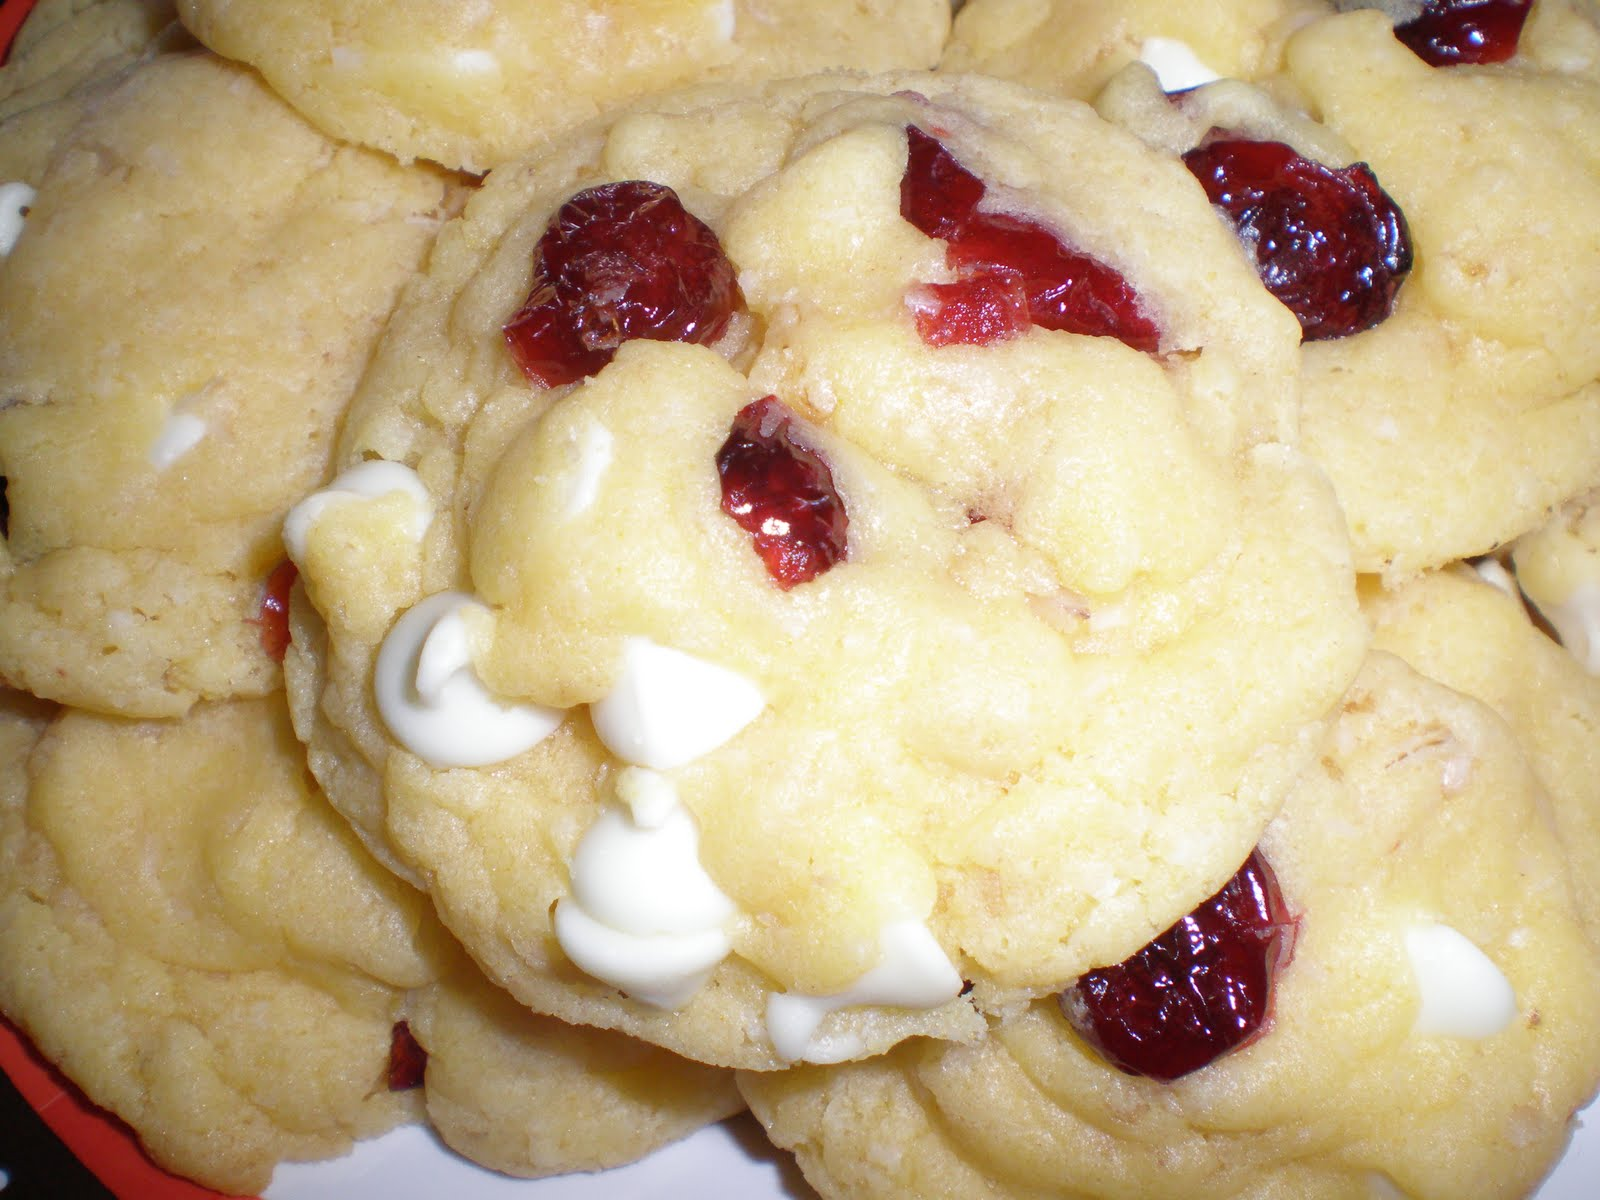 Savvy Chef: Oatmeal Cranberry White Chocolate Cookies